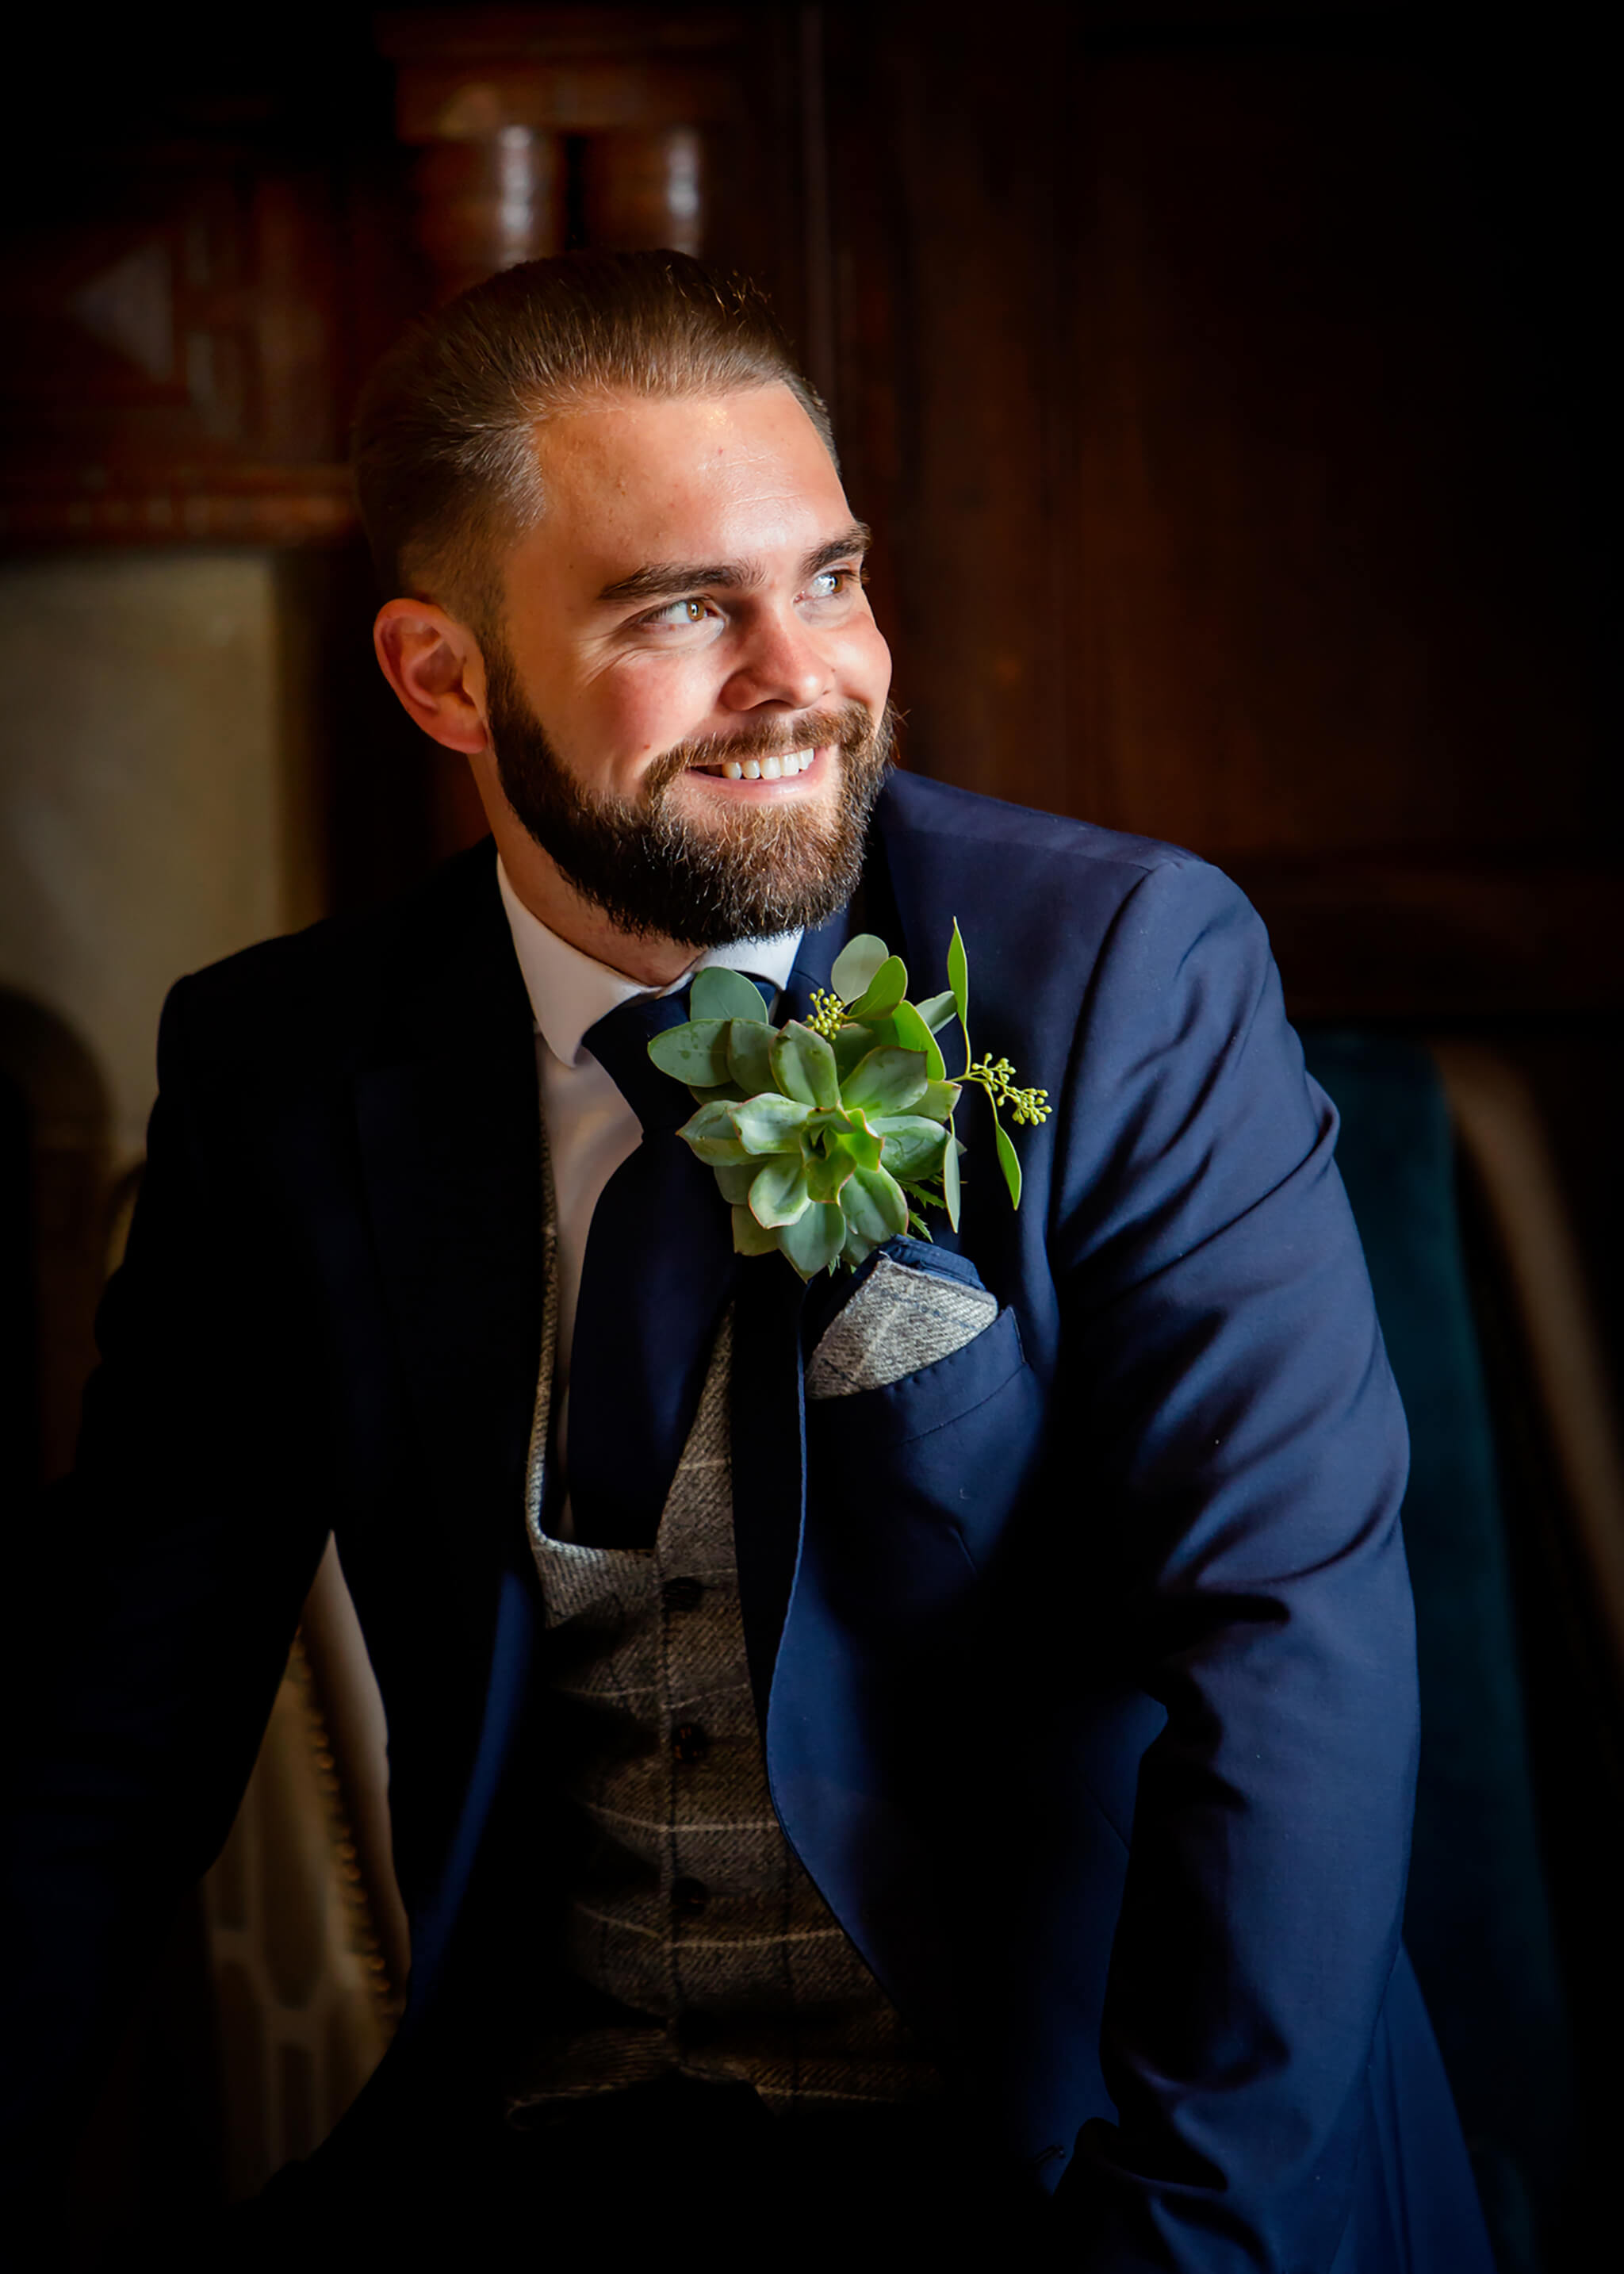 mottram-hall-wedding-photographer-cheshire-011